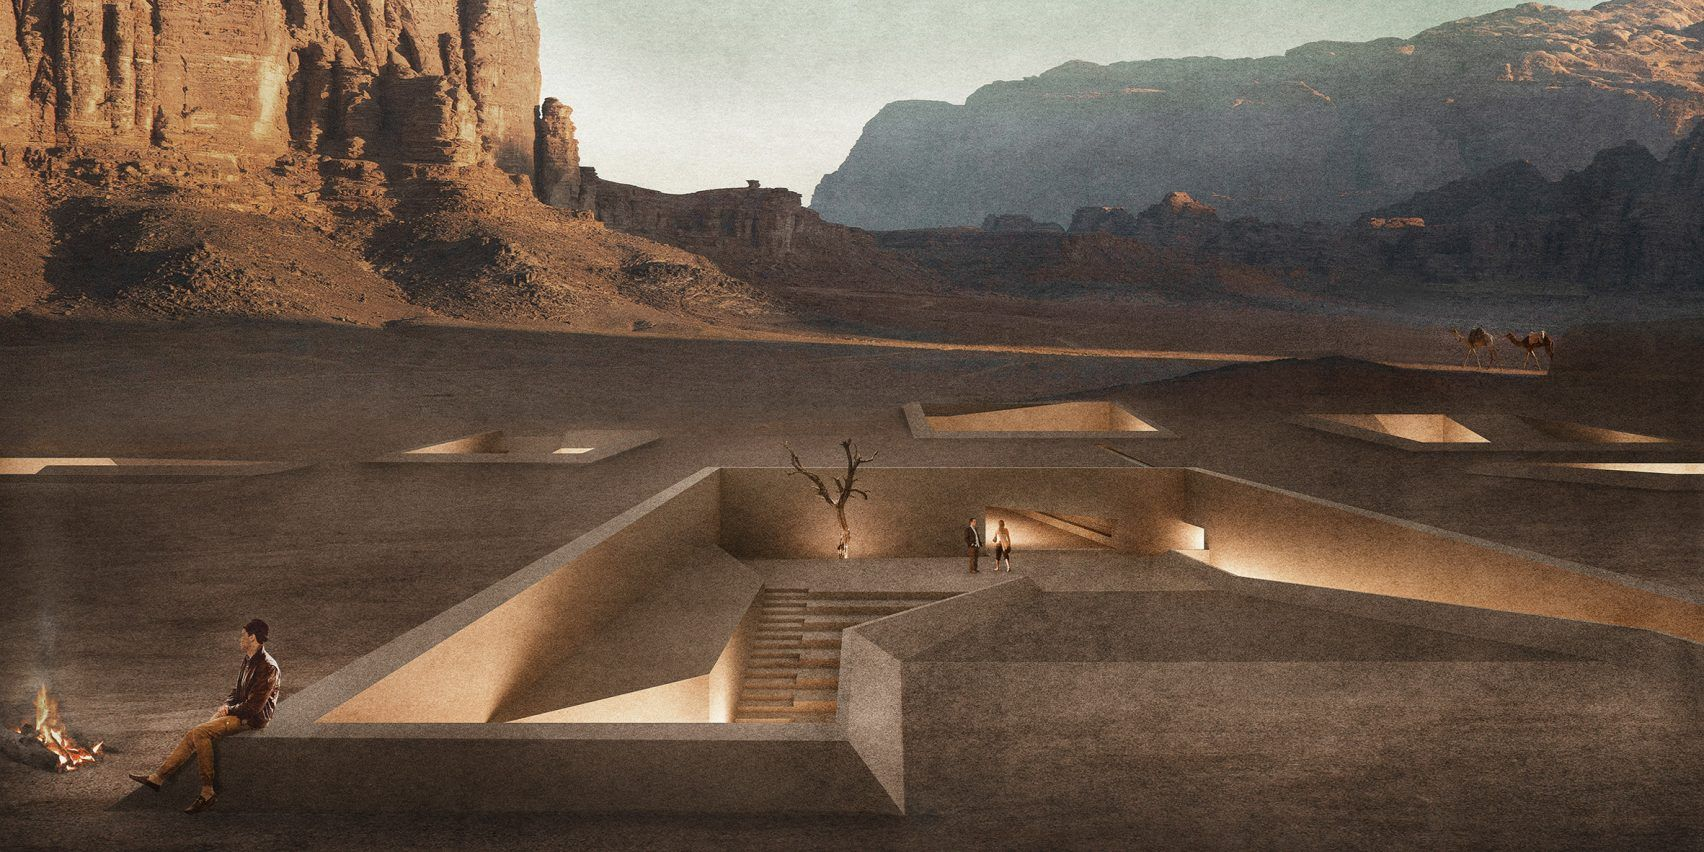 Kamal, an architect and designer at the Basel office of Oppenheim Architecture, drew up plans for the 180,000-square-metre site for his thesis project at the Rice School of Architecture in Texas. #wadirum